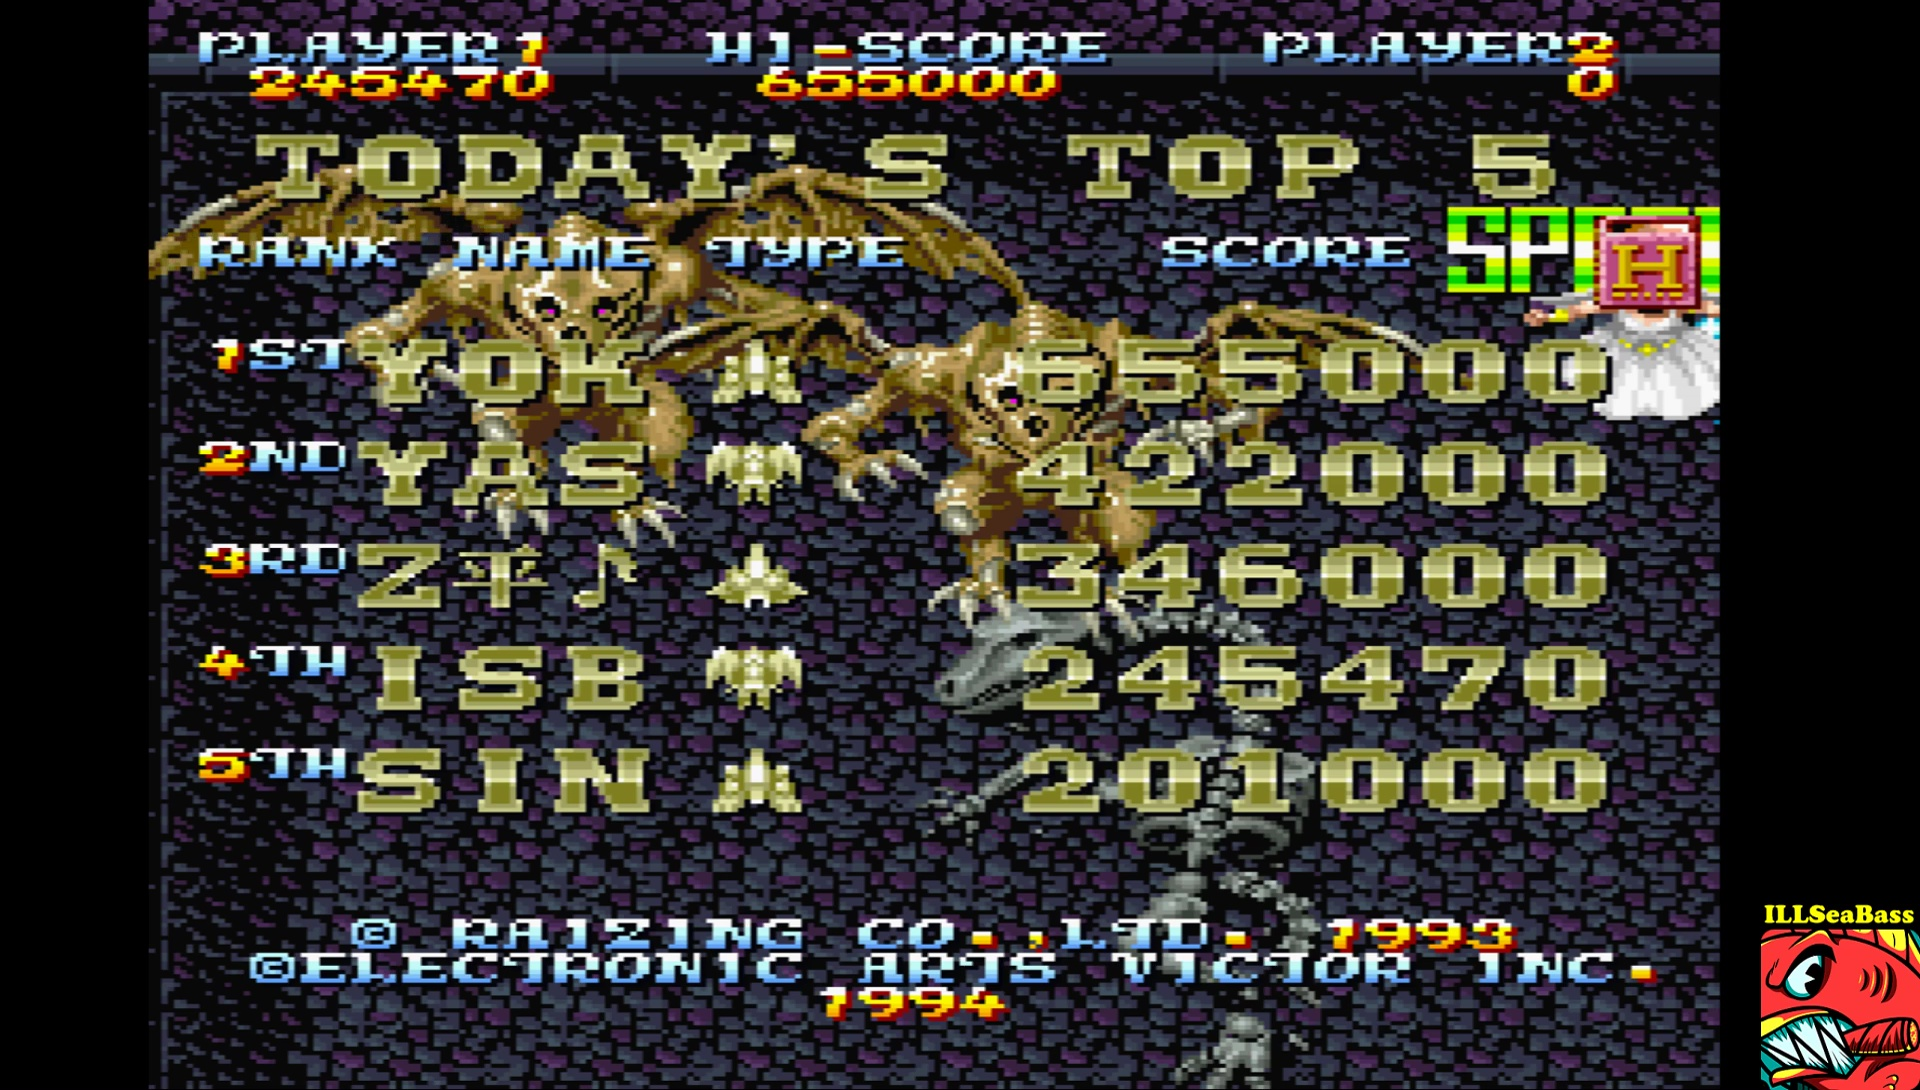 ILLSeaBass: Mahou Daisakusen [Normal] (Sharp X68000 Emulated) 245,470 points on 2017-07-02 13:28:19